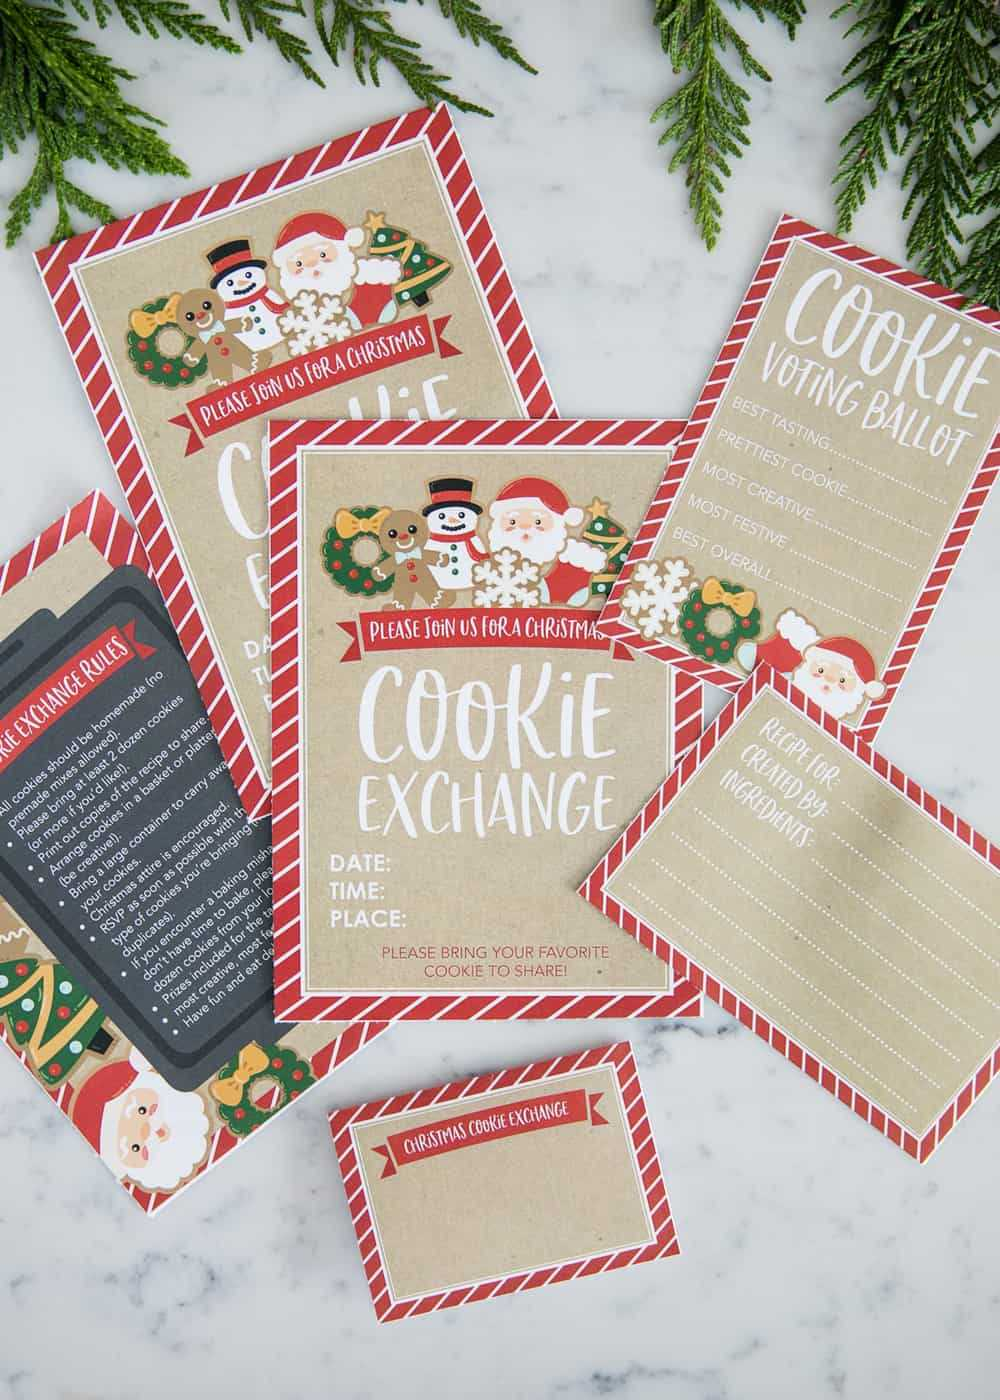 How To Host A Cookie Exchange (W/ Free Printables!) - I Throughout Cookie Exchange Recipe Card Template